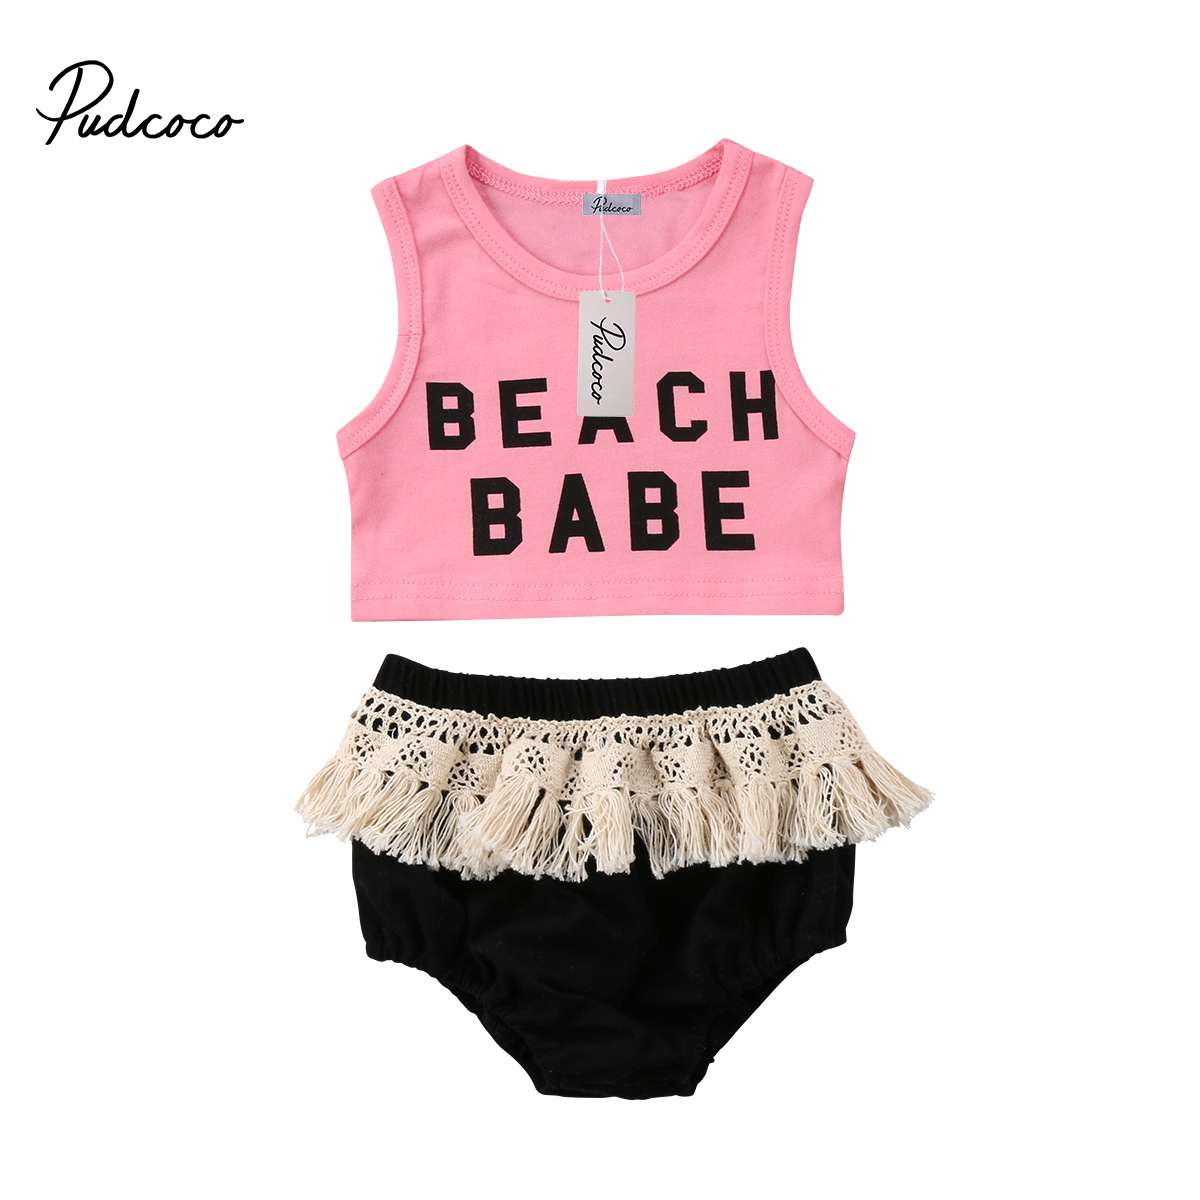 Cute Newborn Kids Baby Girl Clothing Set Crop Top Vest Sleeveless Tassels Shorts Cotton 2pcs Clothes Summer Baby Girls 6M-3T baby girls summer clothing girls july 4th anchored in god s word shorts clothes kids anchor clothing with accessories